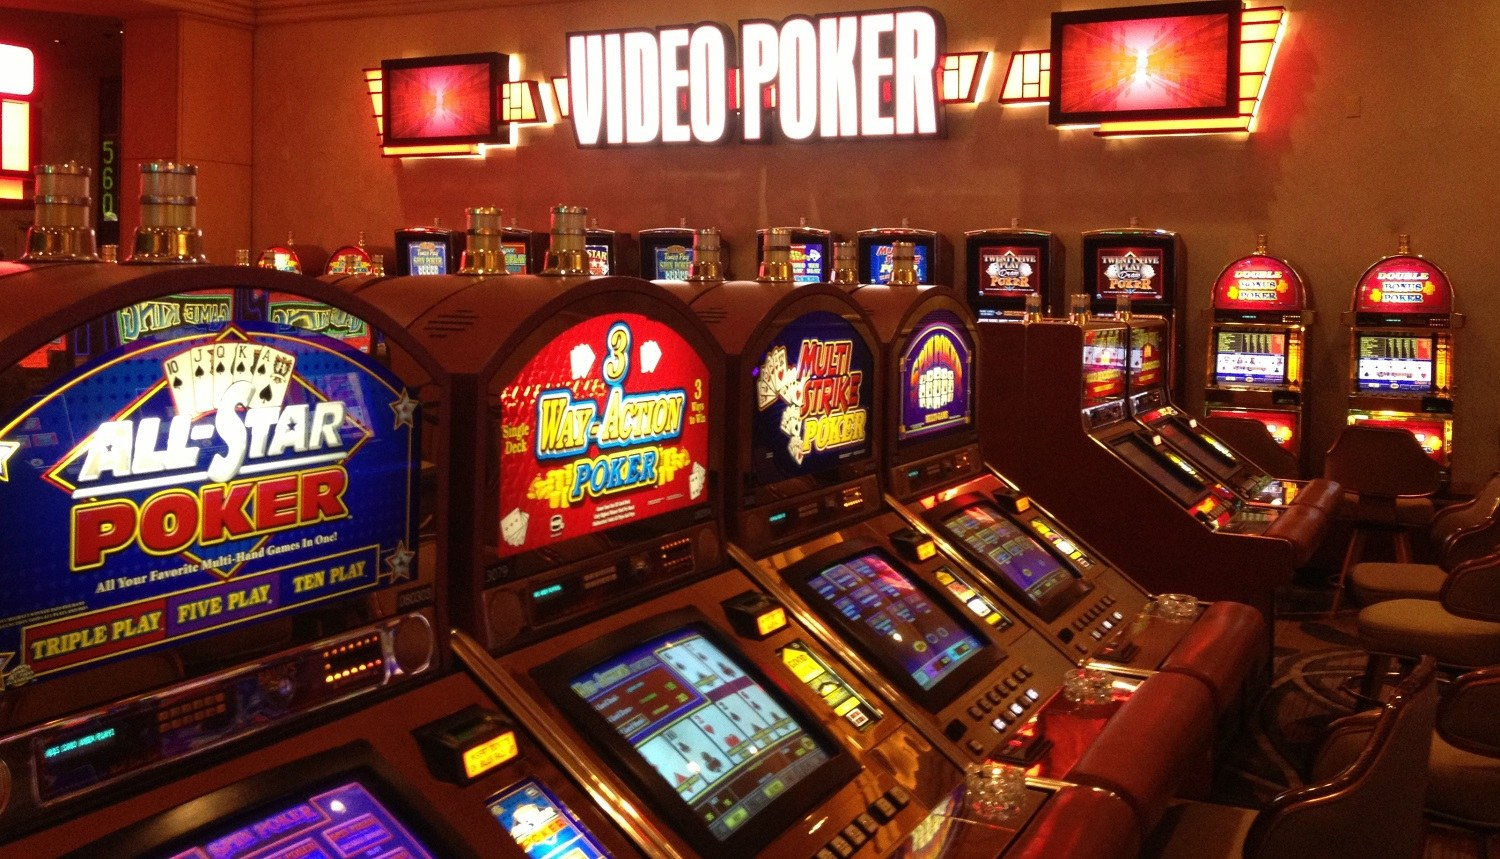 station casino online video poker